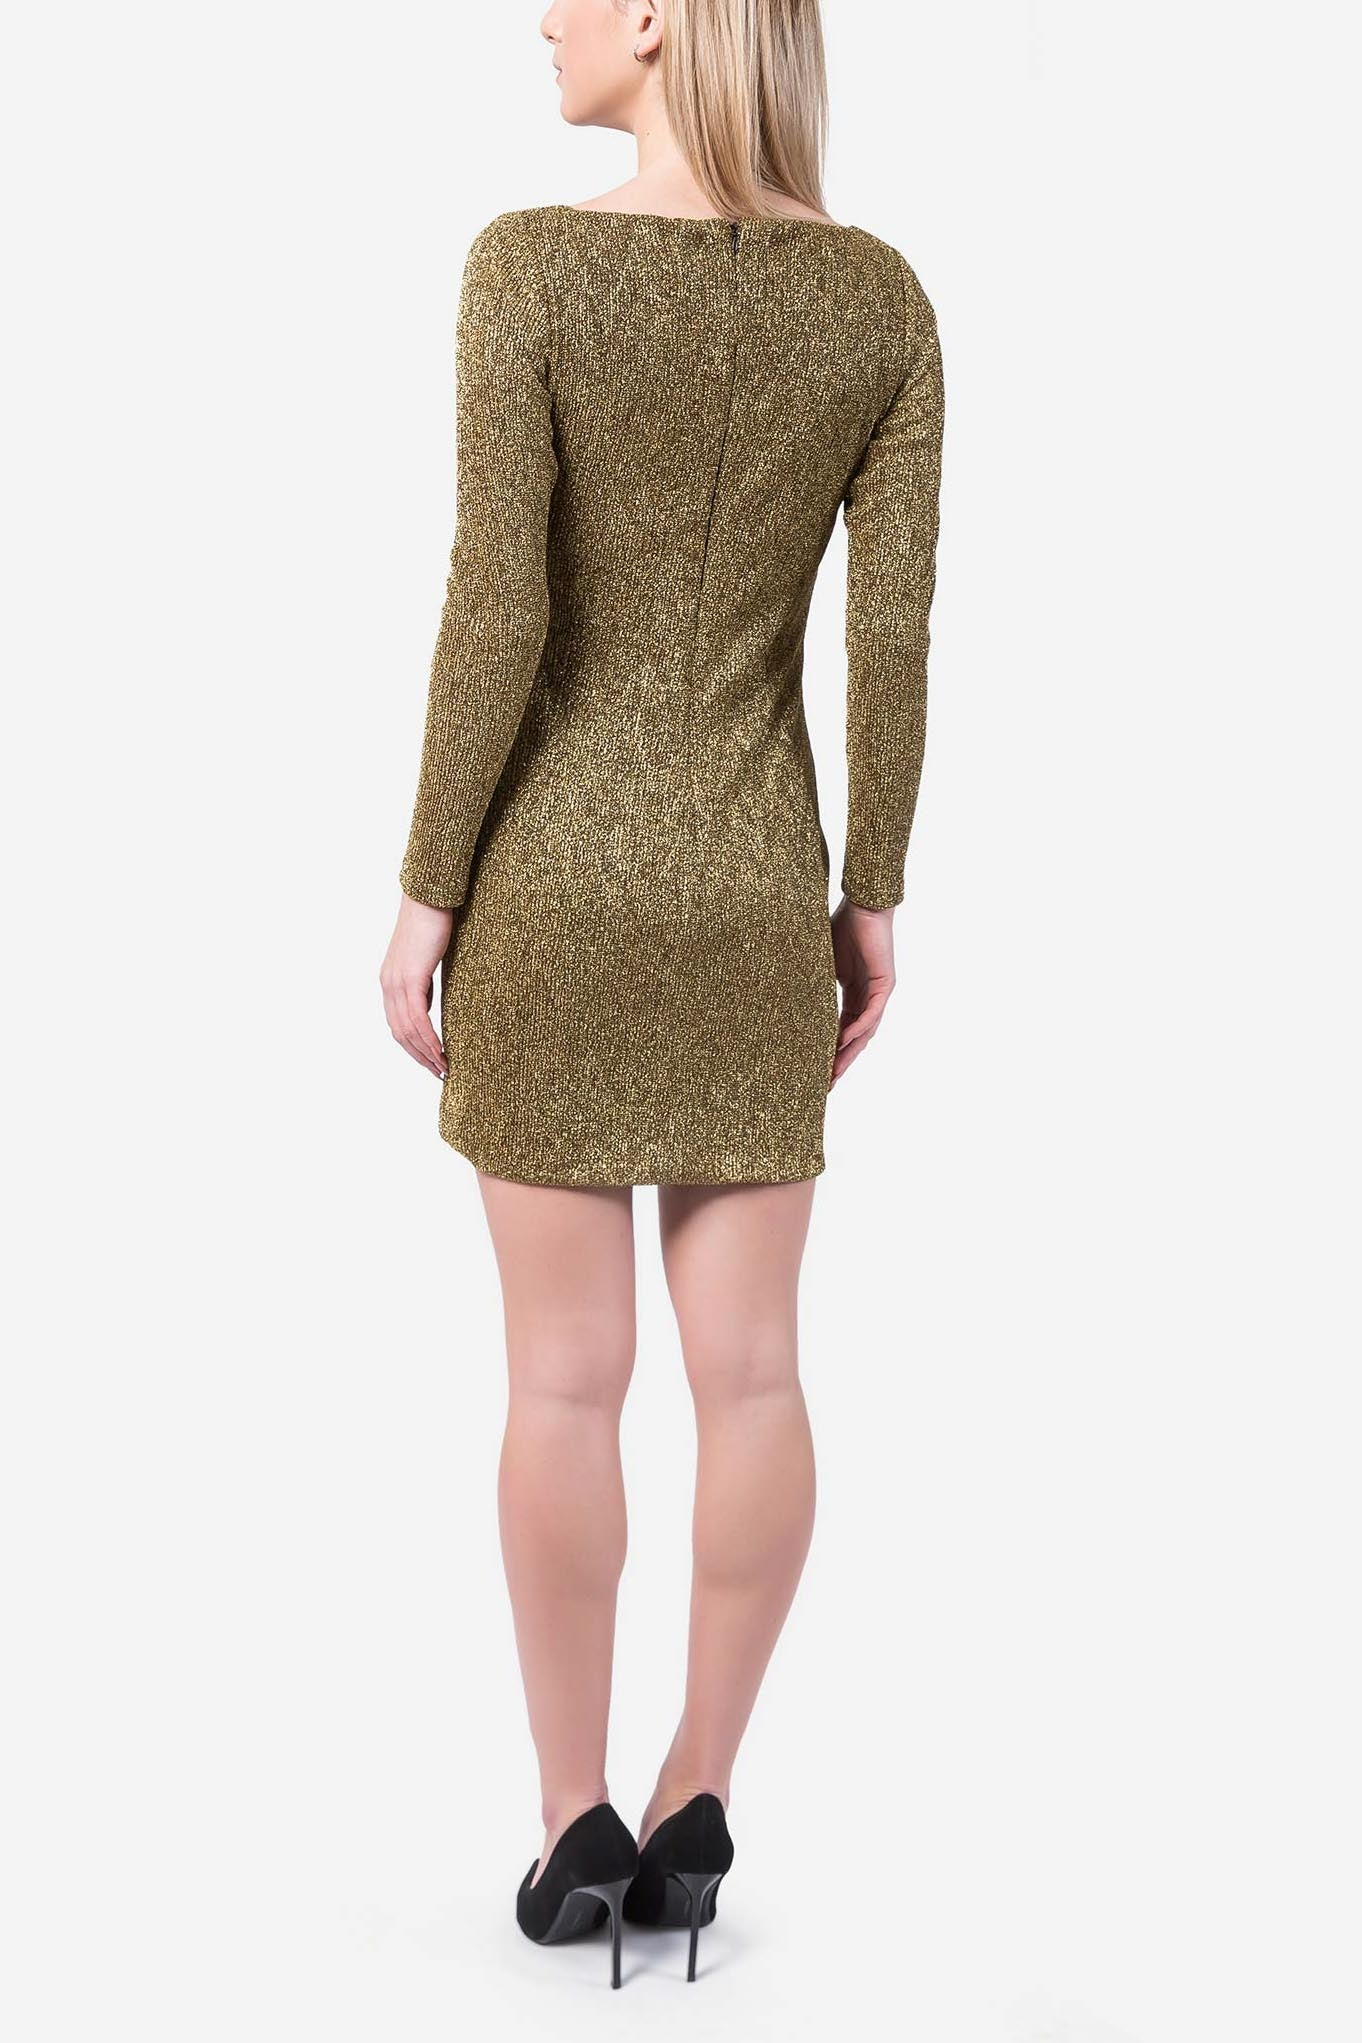 Gold Dress With Sleeves